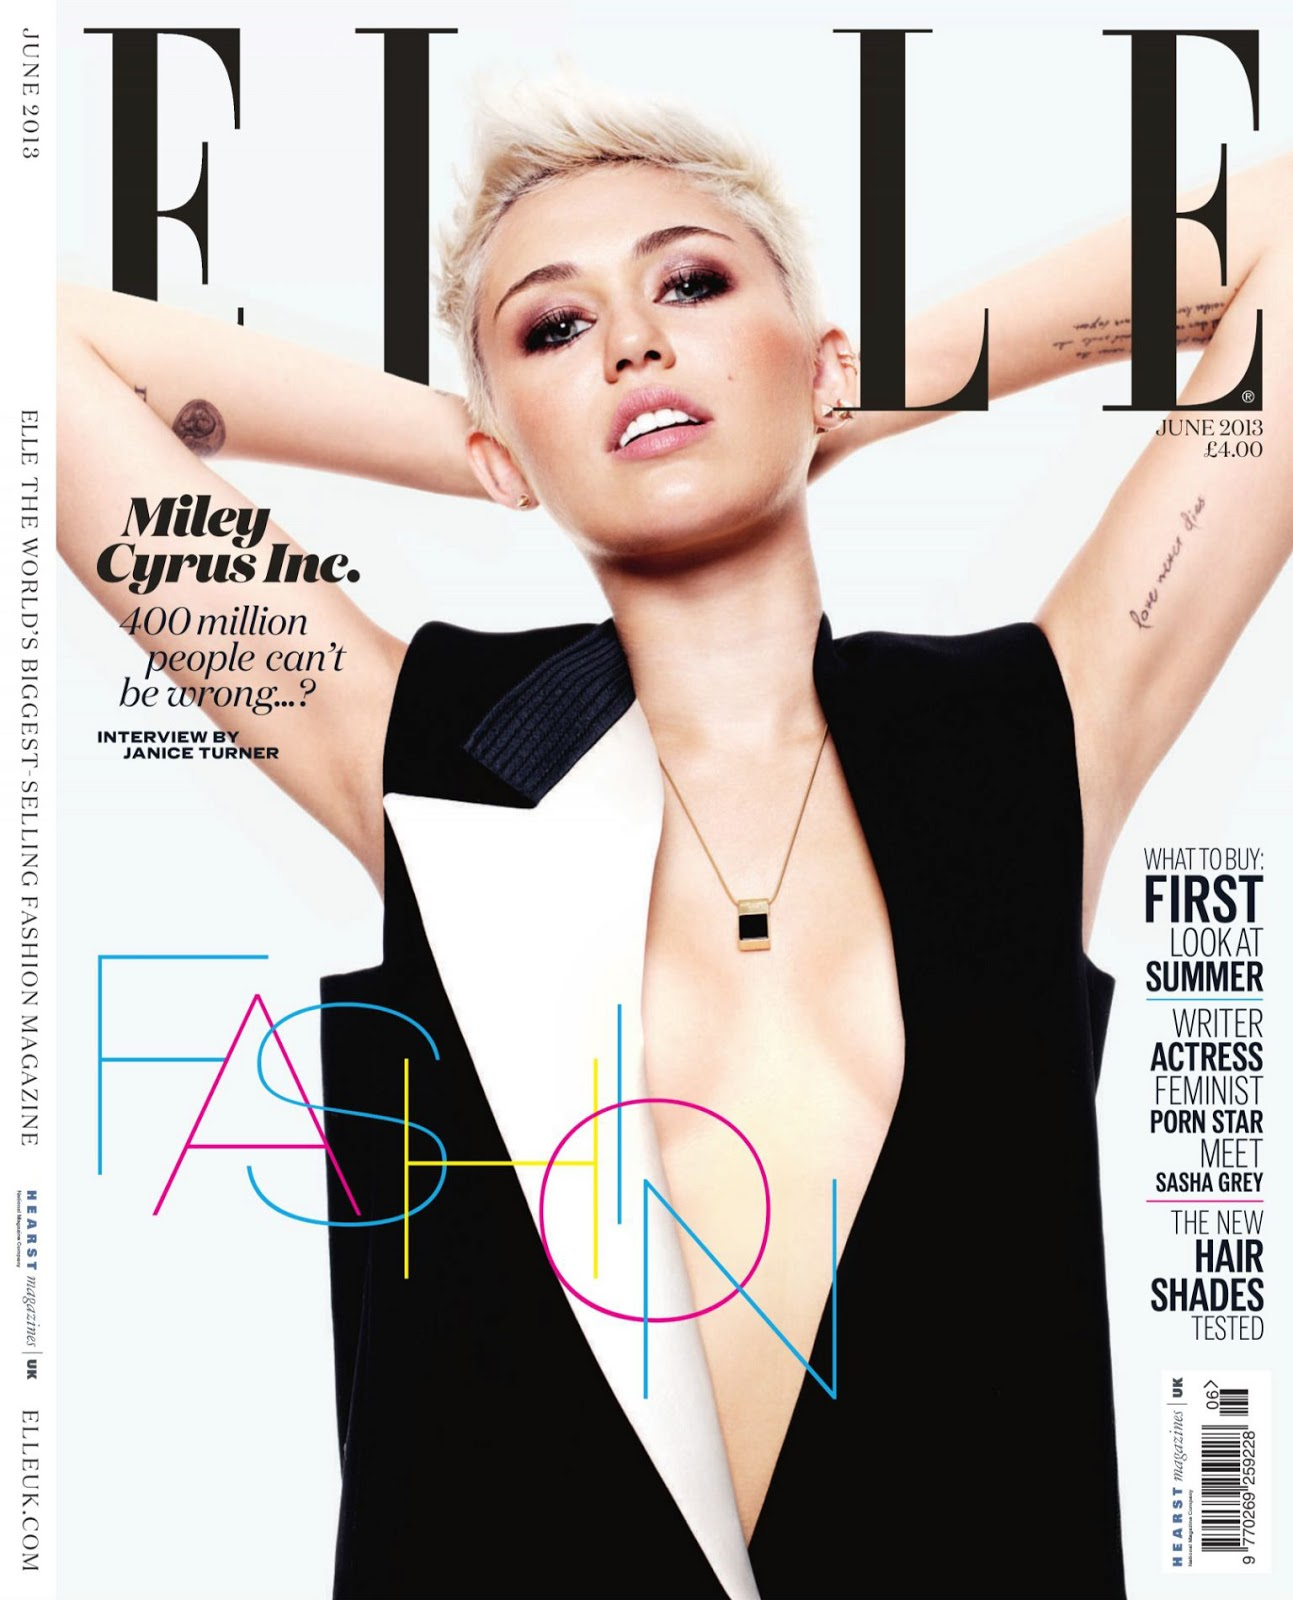 Miley Cyrus: Rapunzel With A Mohawk: Miley Cyrus By Jan Welters For Uk